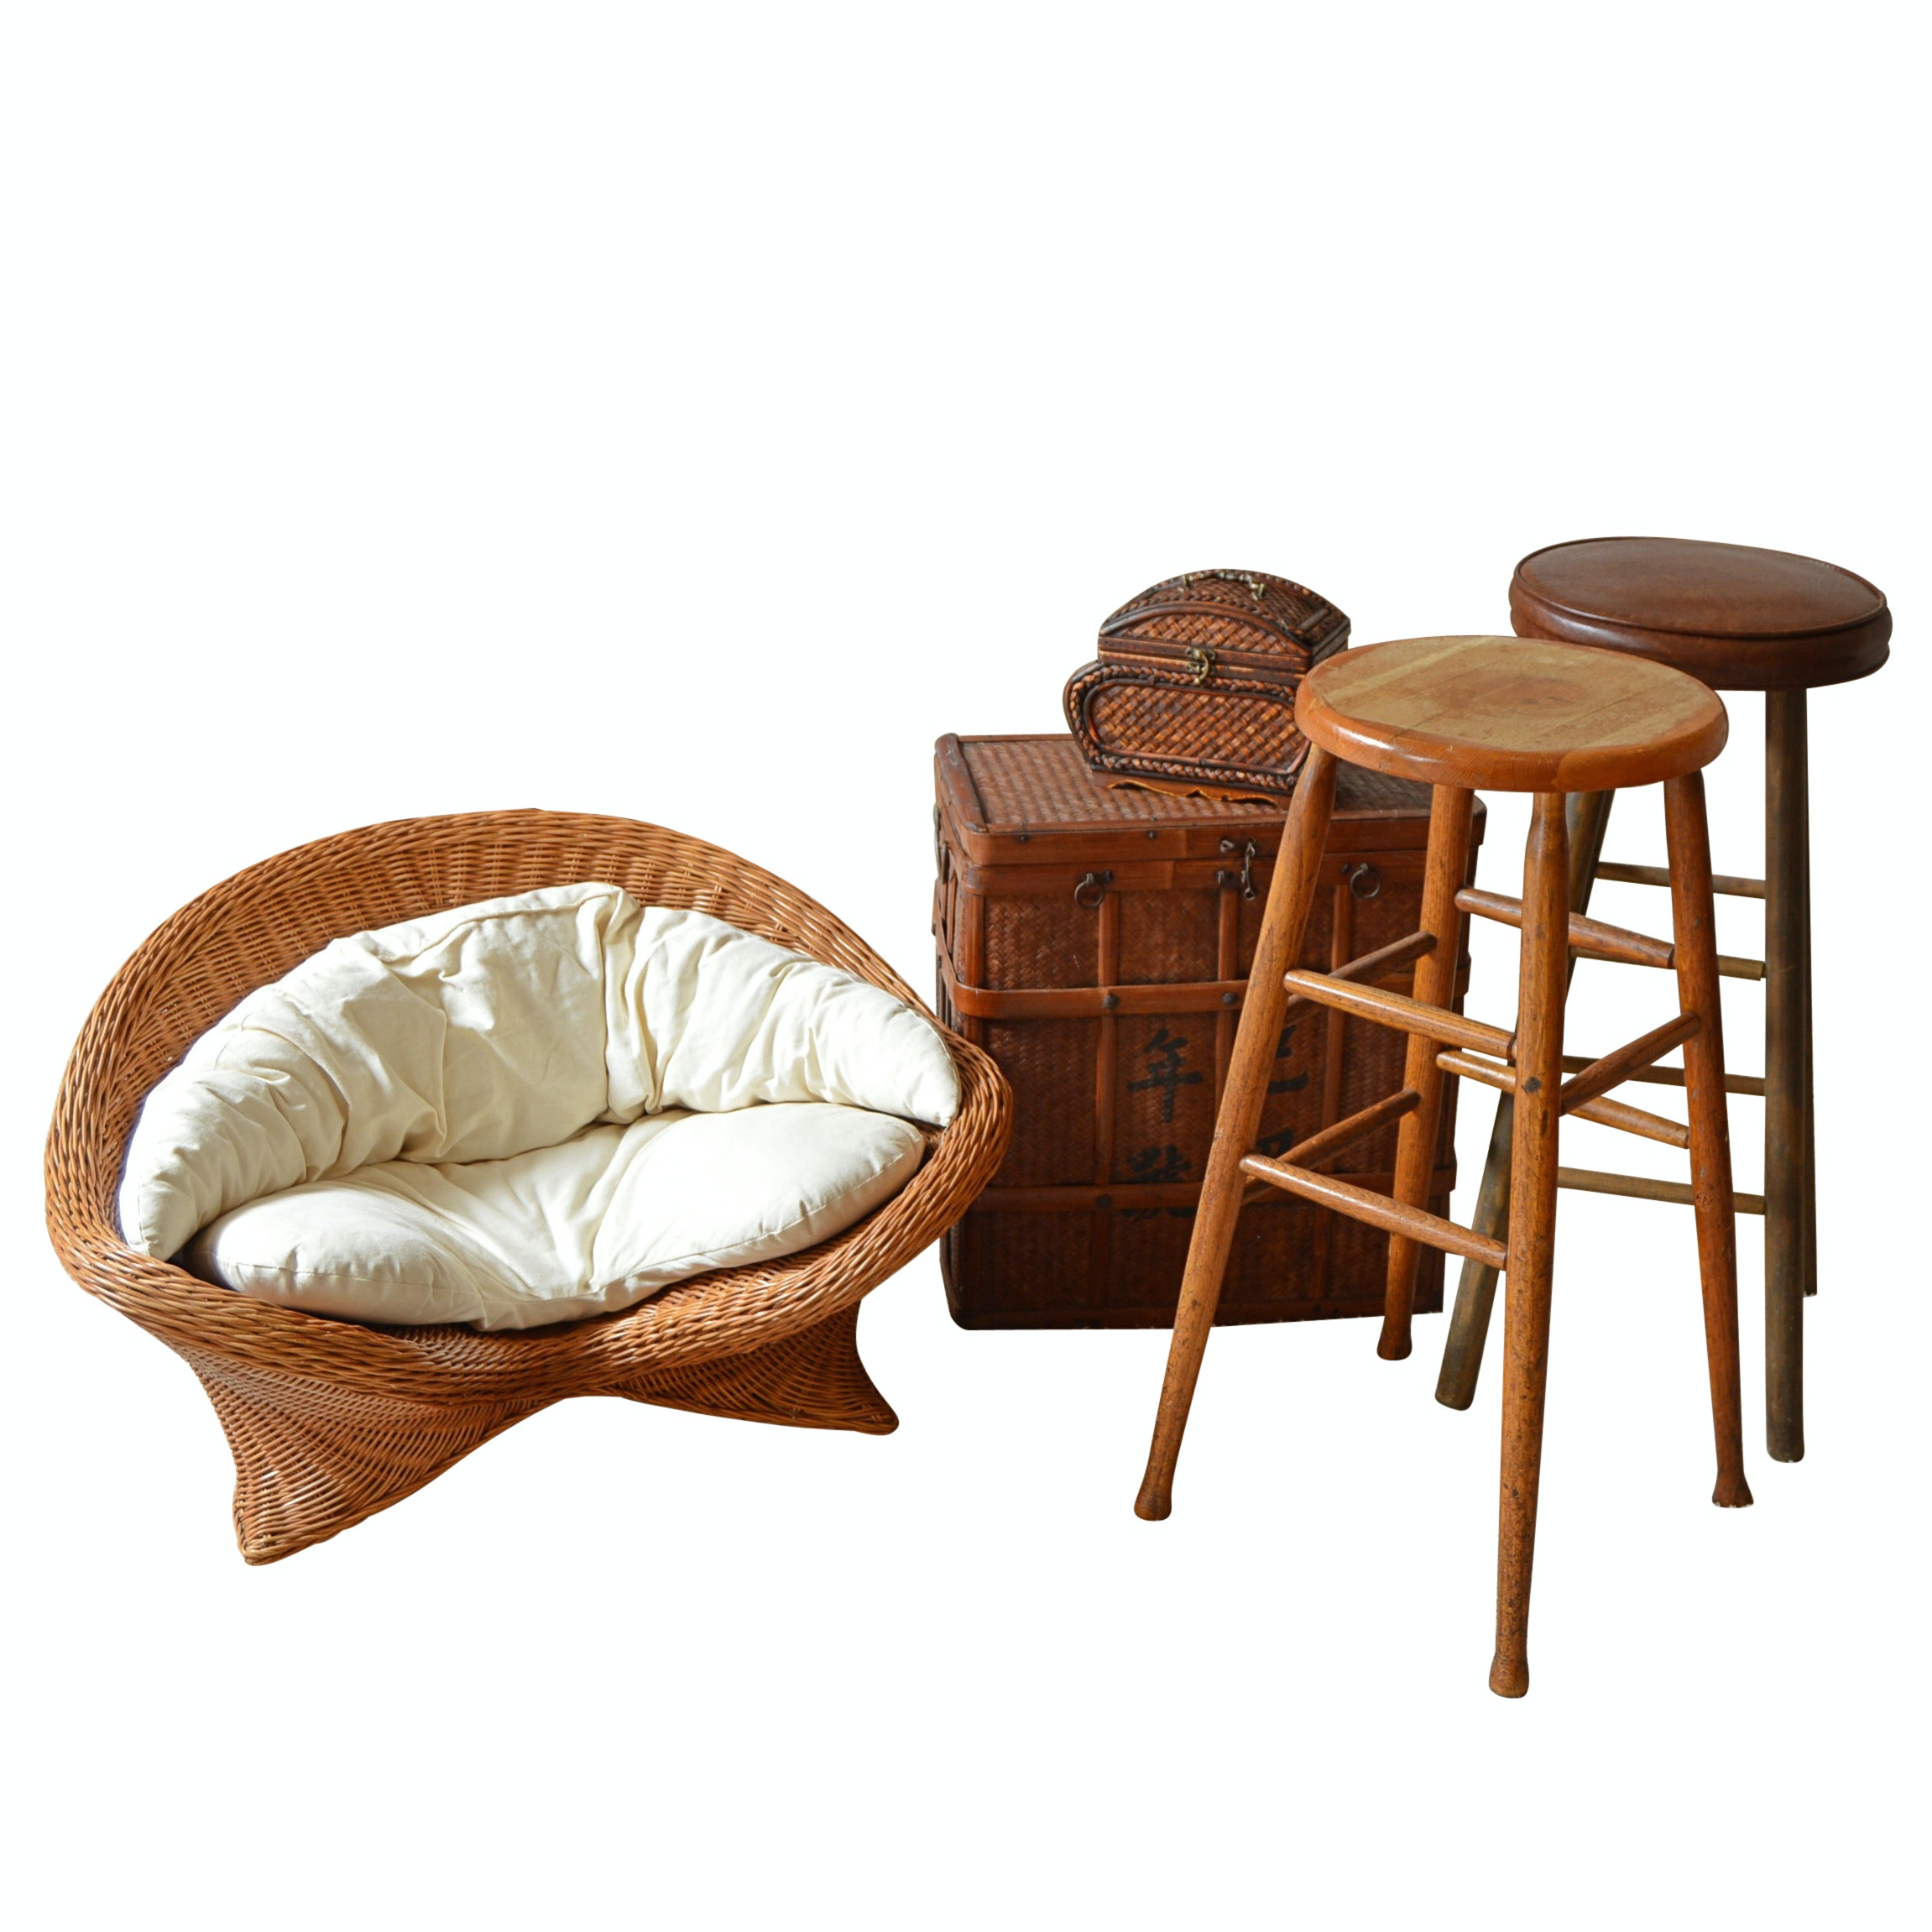 Wicker Decor, Pair of Wood Stools